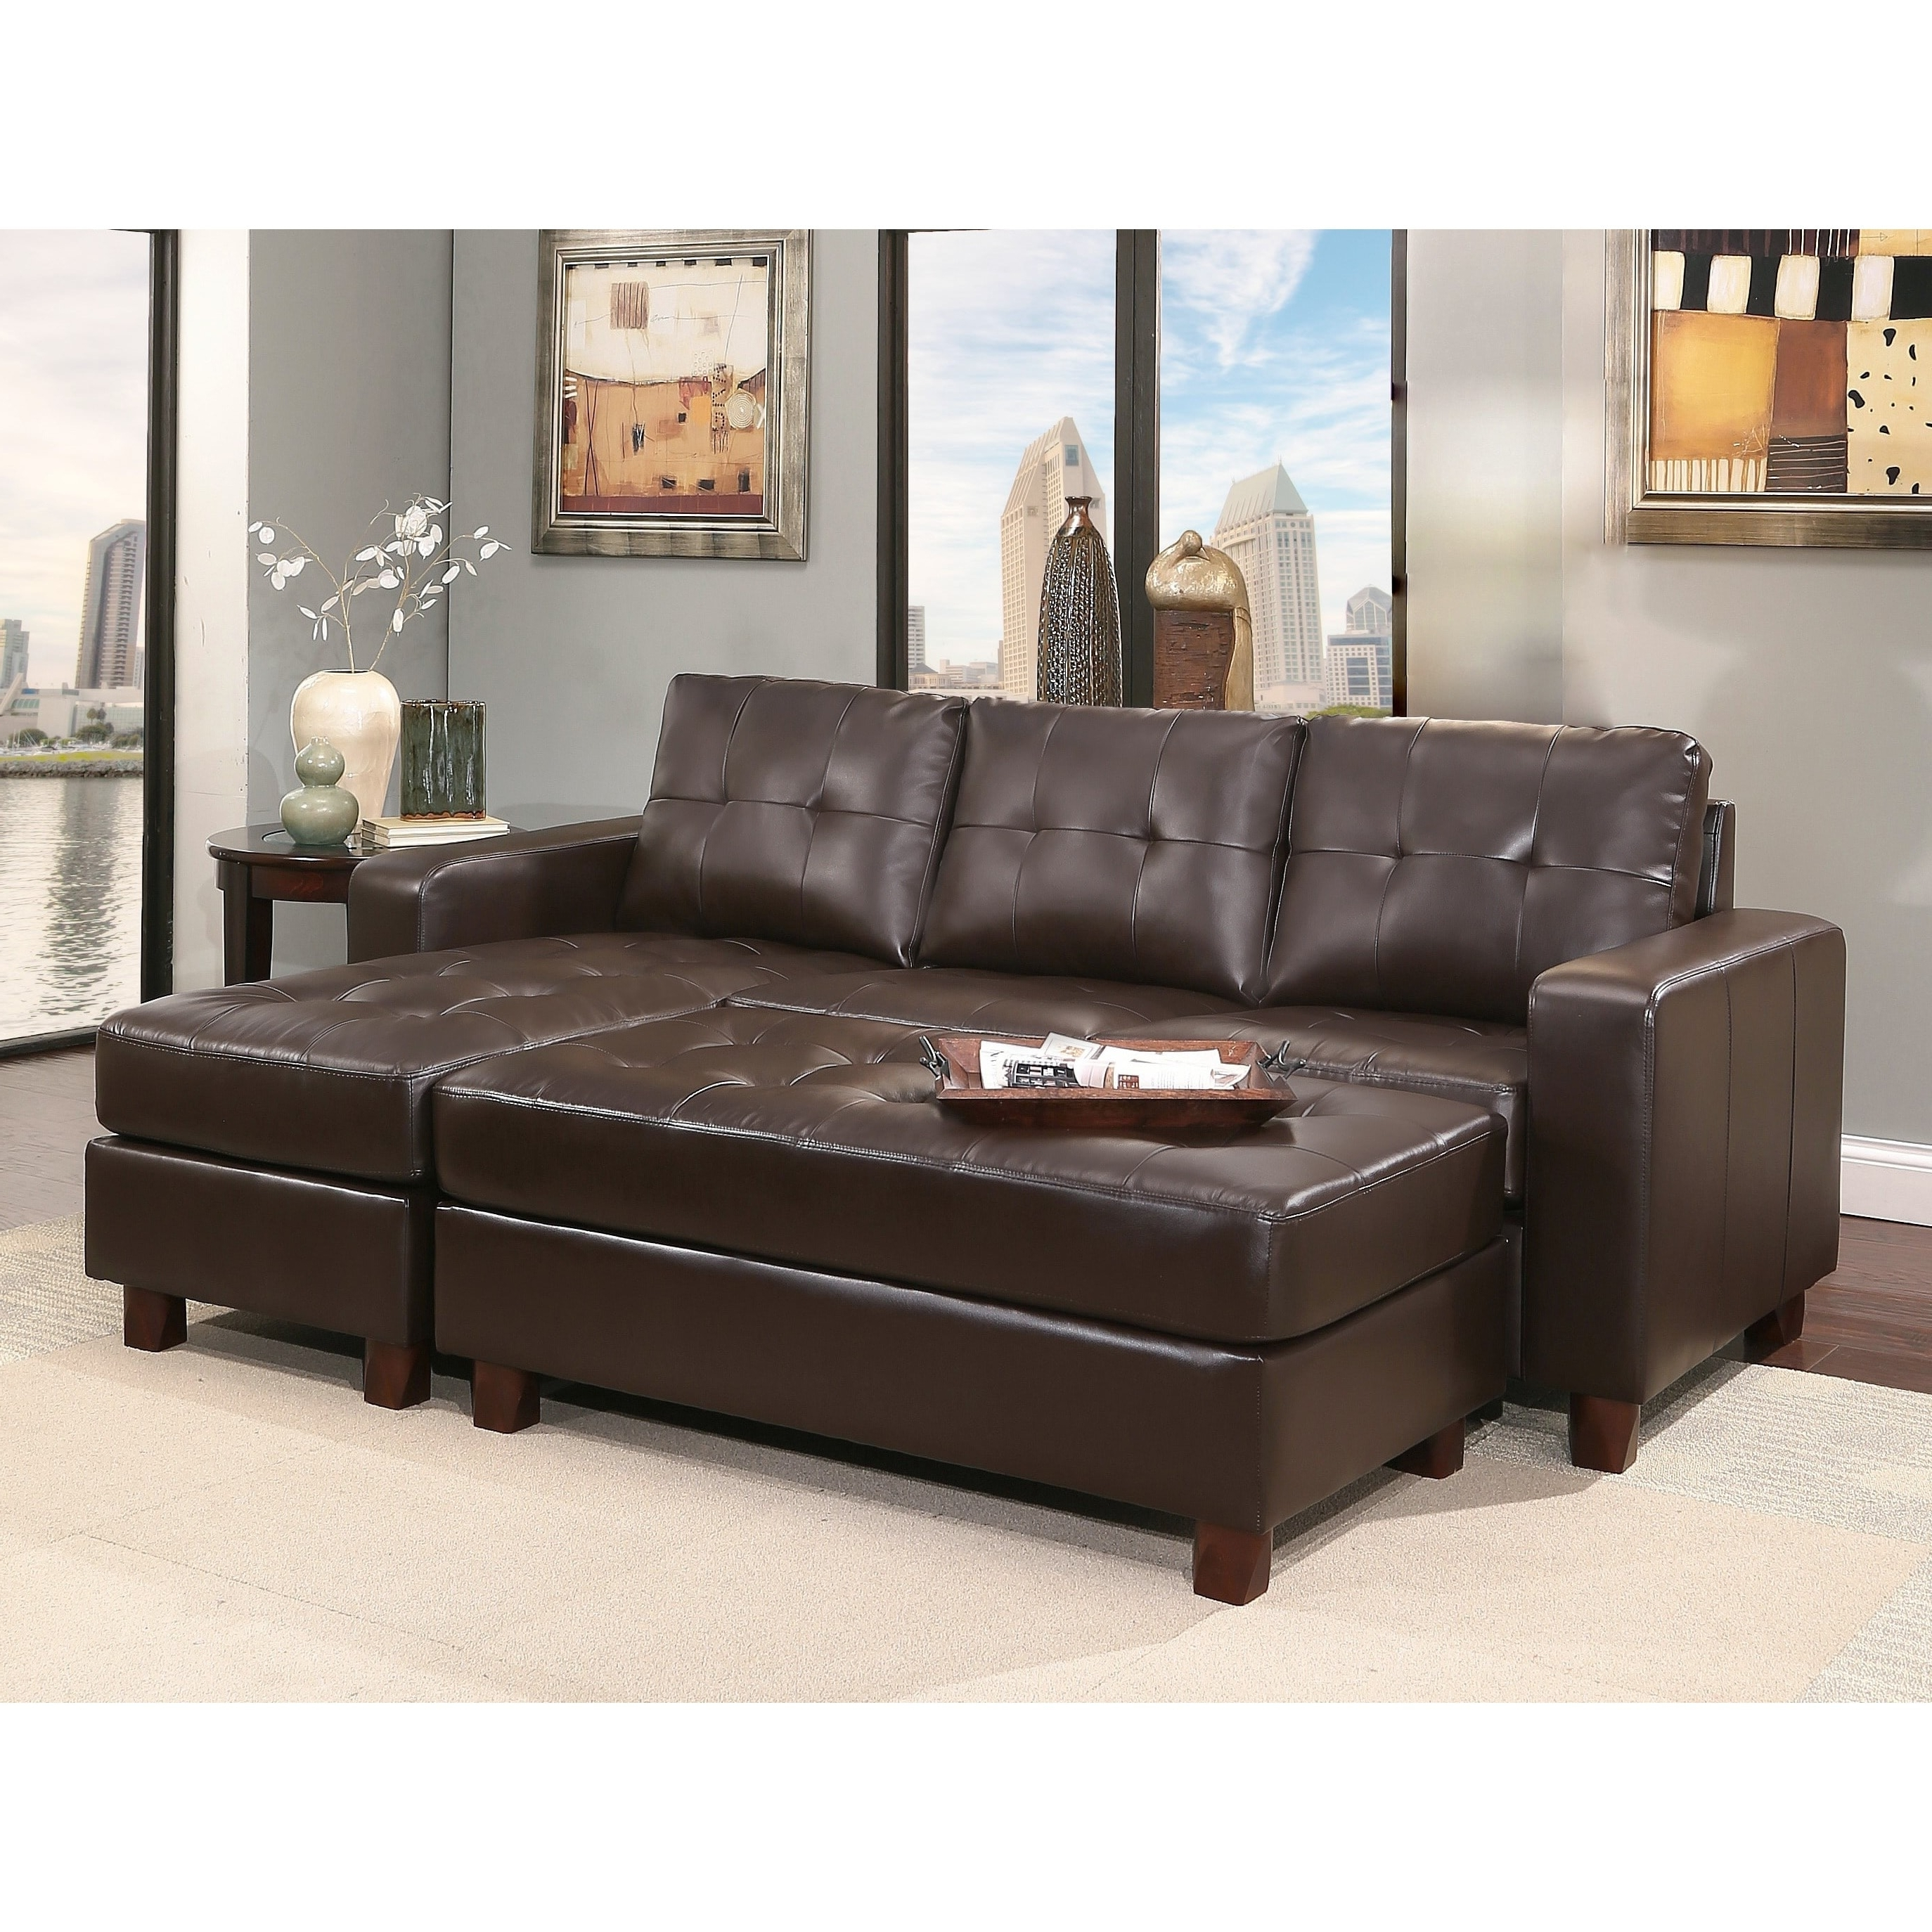 Abbyson Montgomery Leather Reversible Sectional And Ottoman – Free In Widely Used Sectionals With Ottoman (View 15 of 15)